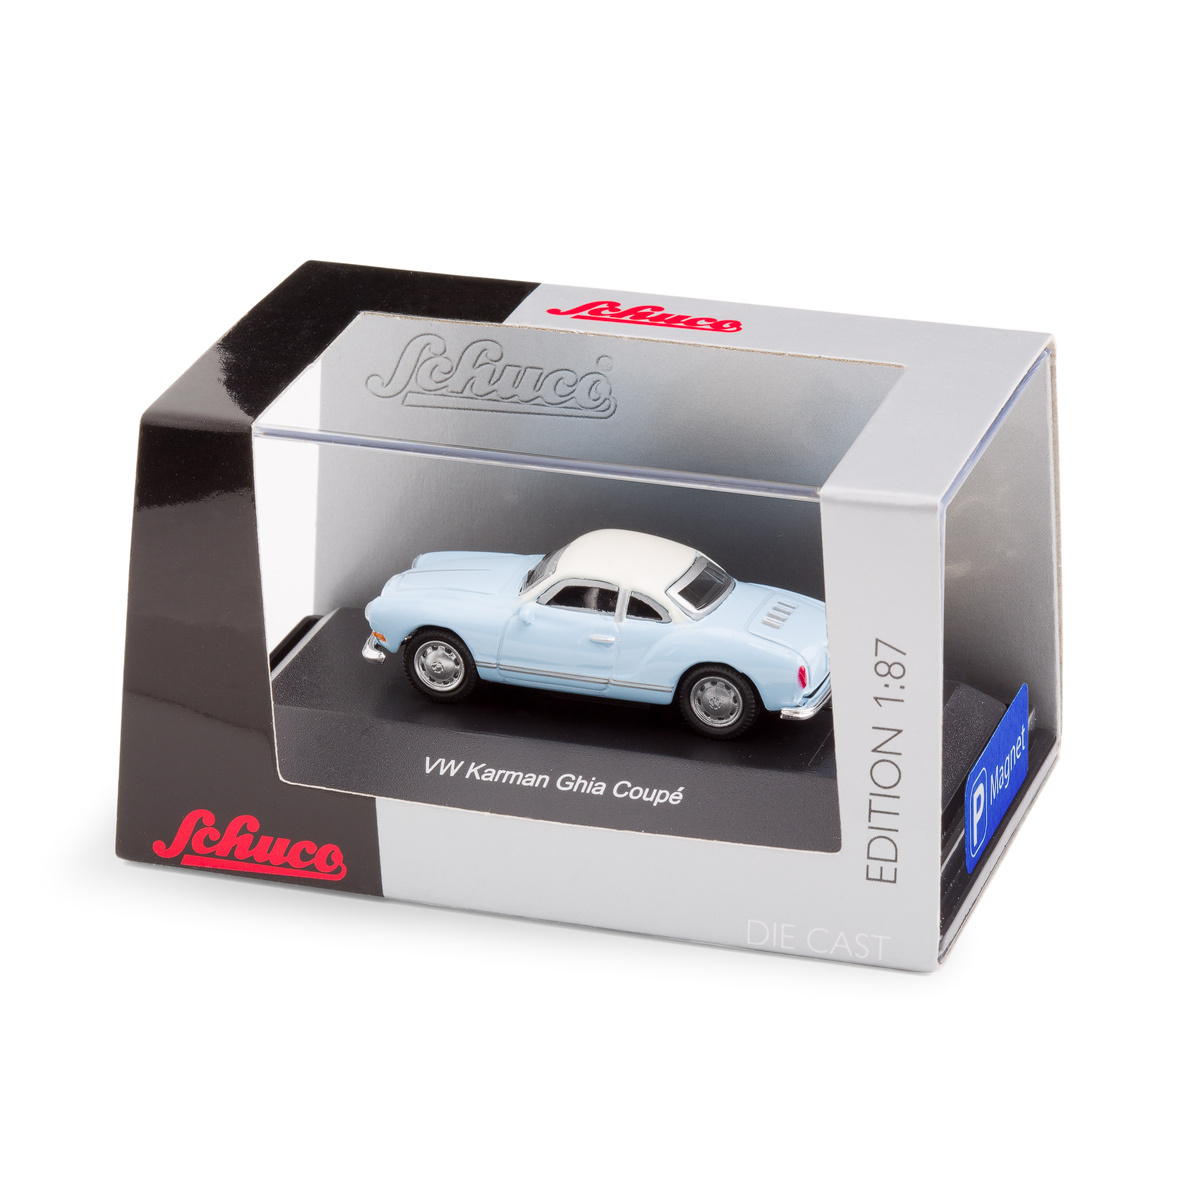 VW Karmann Ghia with underfloor magnet | The Design Gift Shop